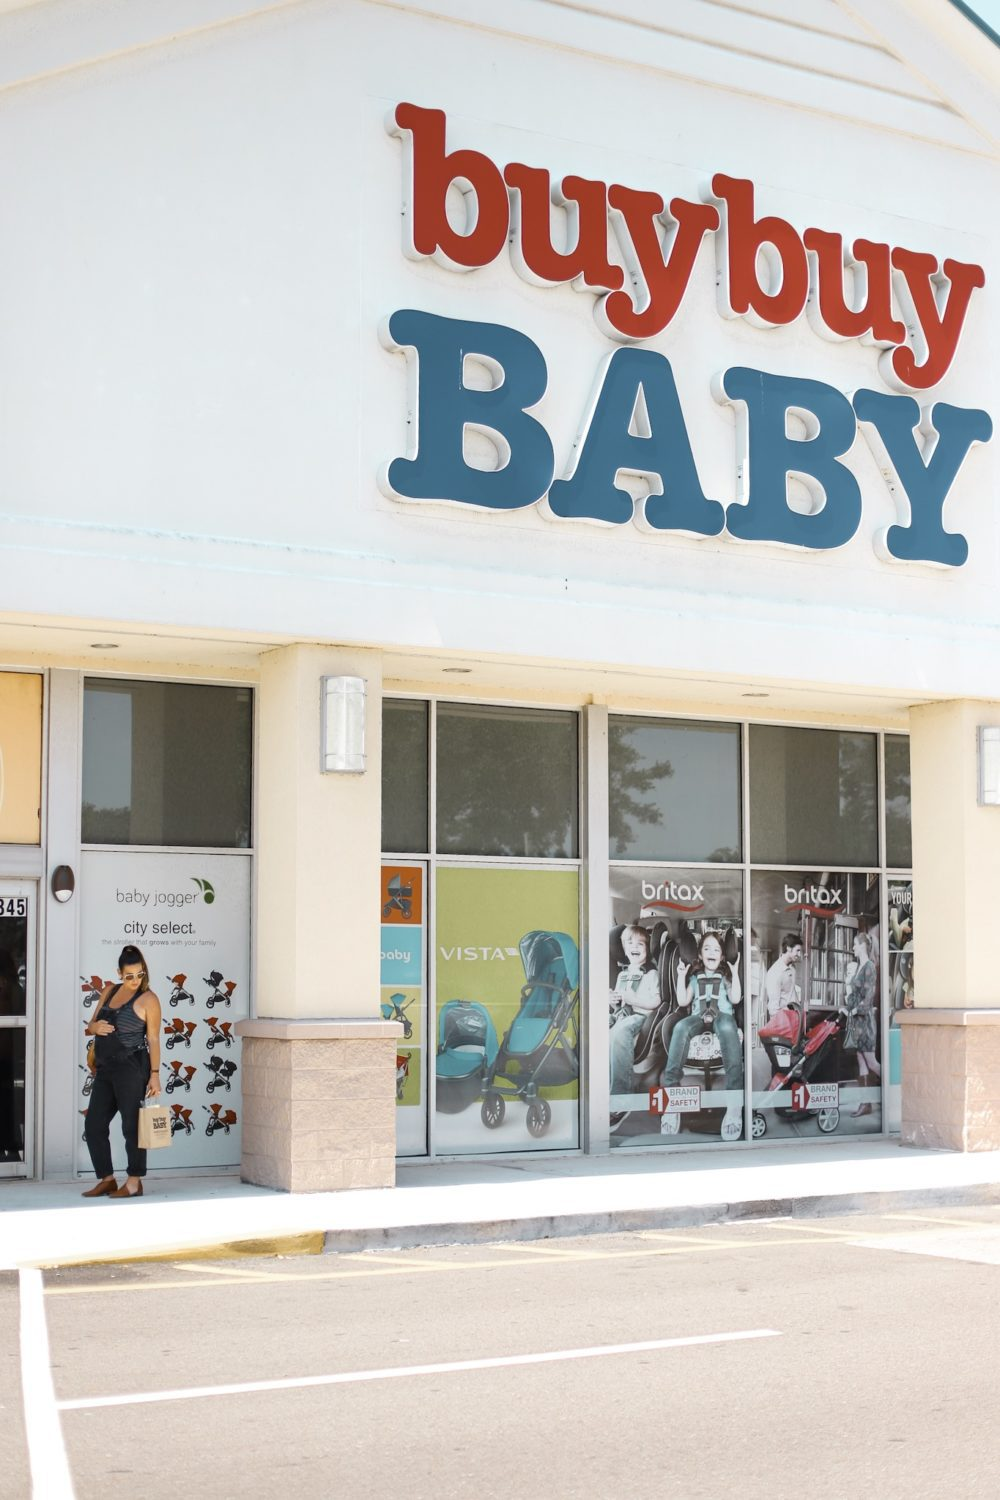 Useful Twin Products and Must Haves for Twins! Our Twin Registry Essentials - Splurge vs Steal by top US lifestyle blogger, Tabitha Blue of Fresh Mommy Blog | Baby Registry Must-Haves for Twins by popular US mom blog Fresh Mommy Blog: image of a pregnant woman standing outside of a buybuy Baby store.